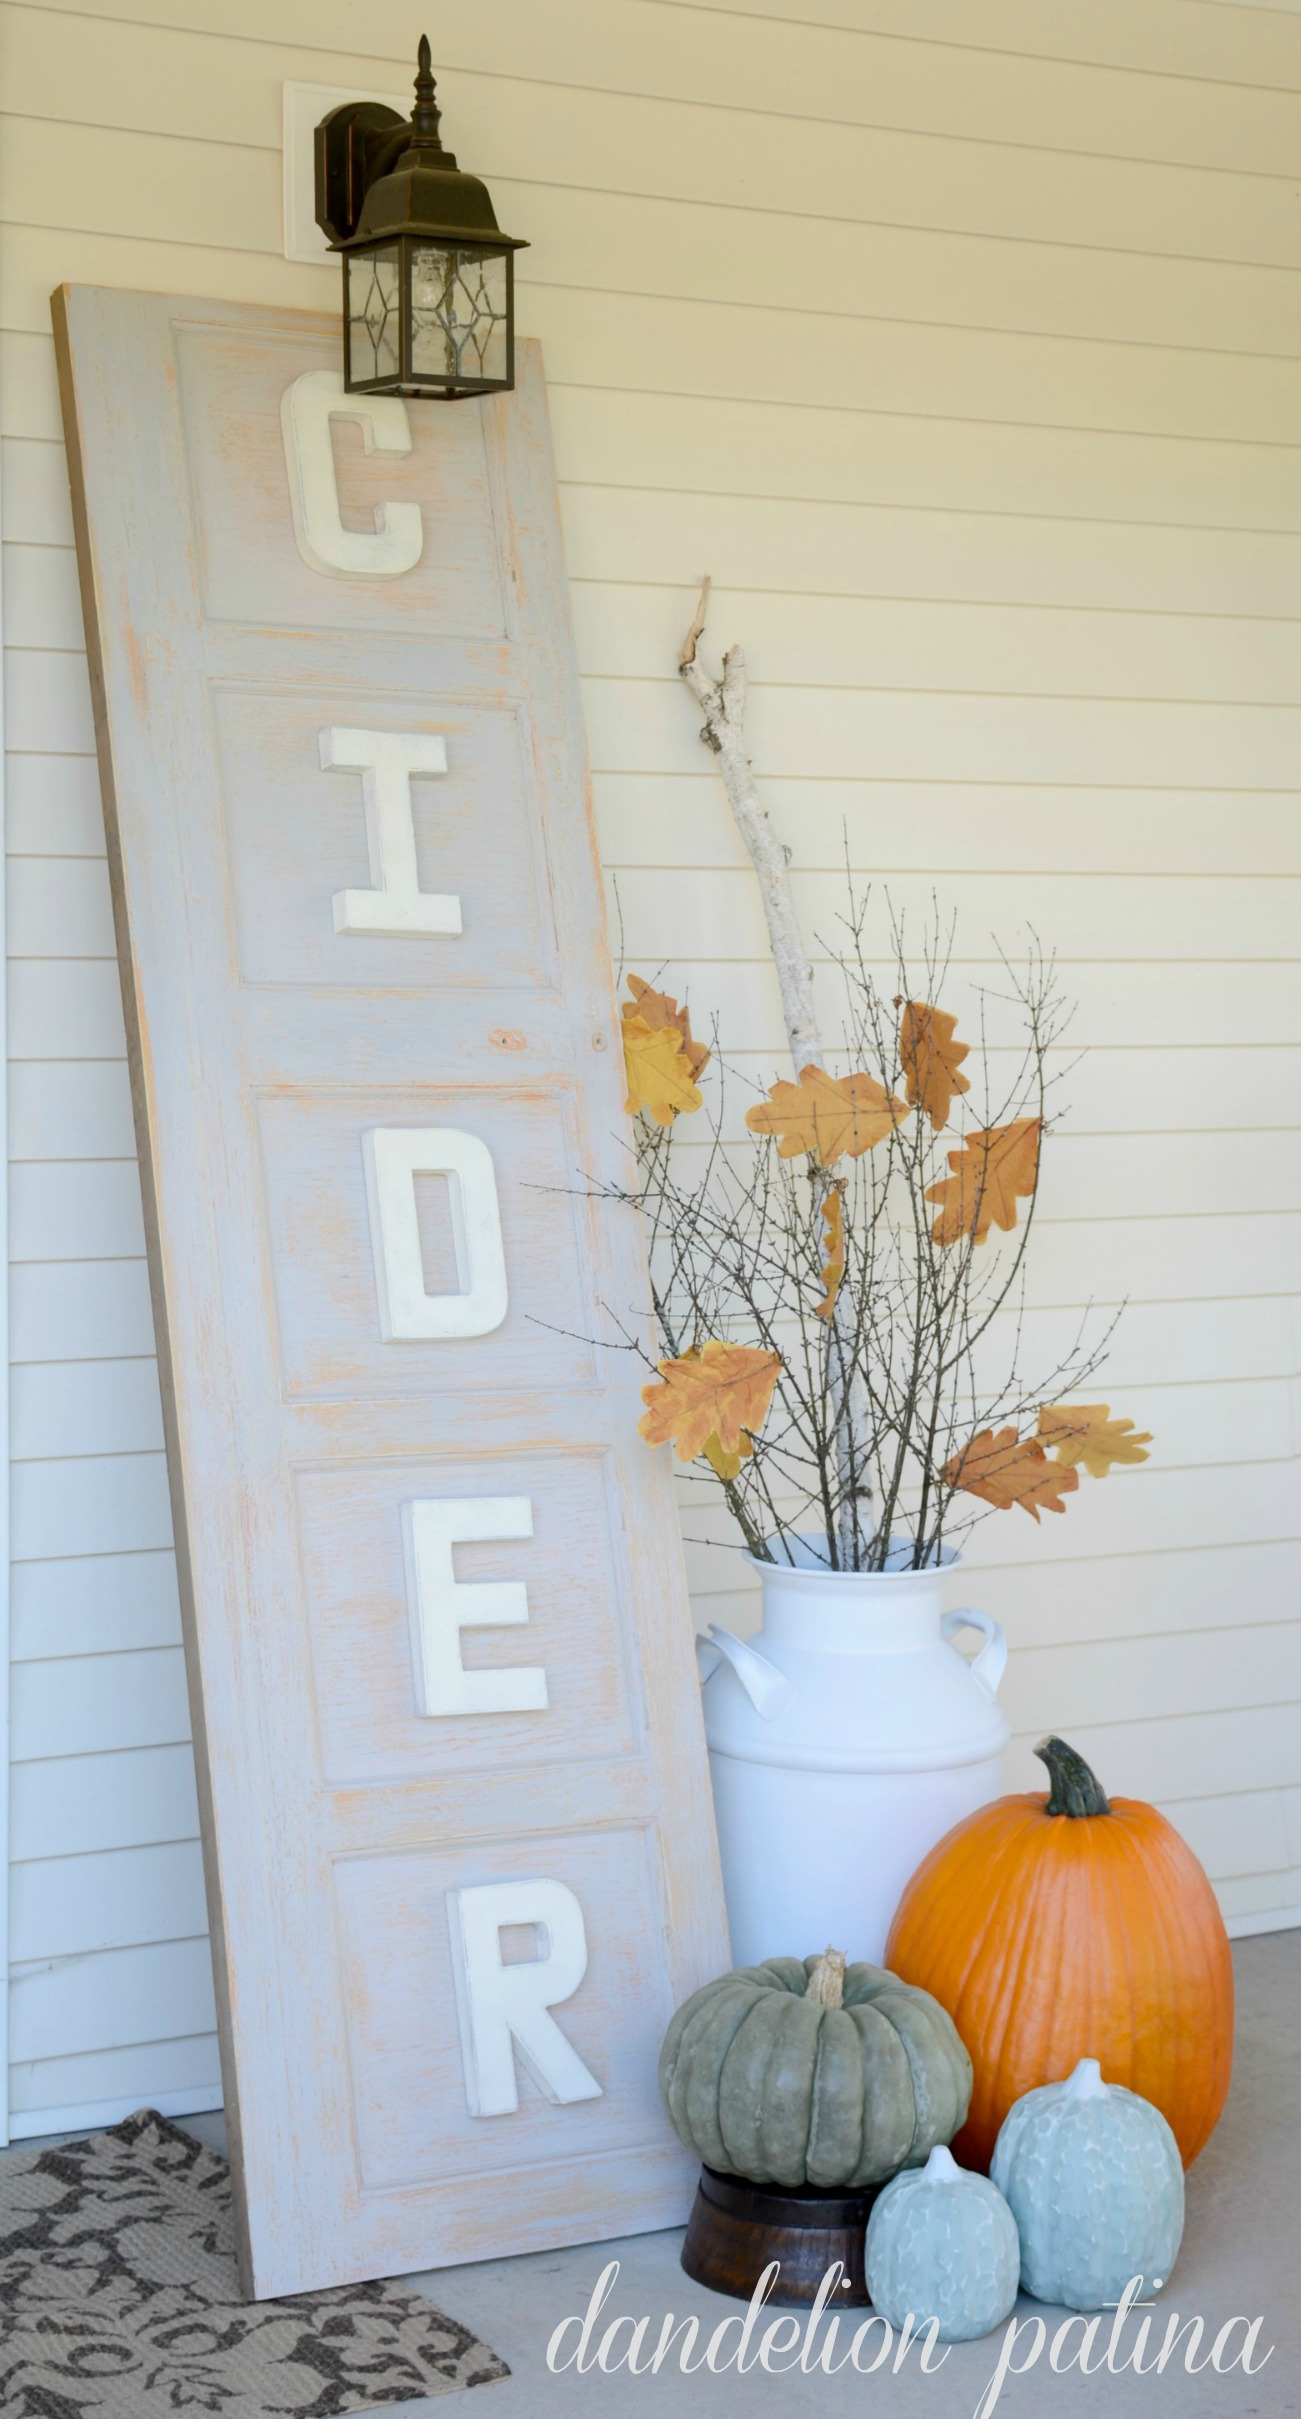 apple cider sign from re-purposed garage door